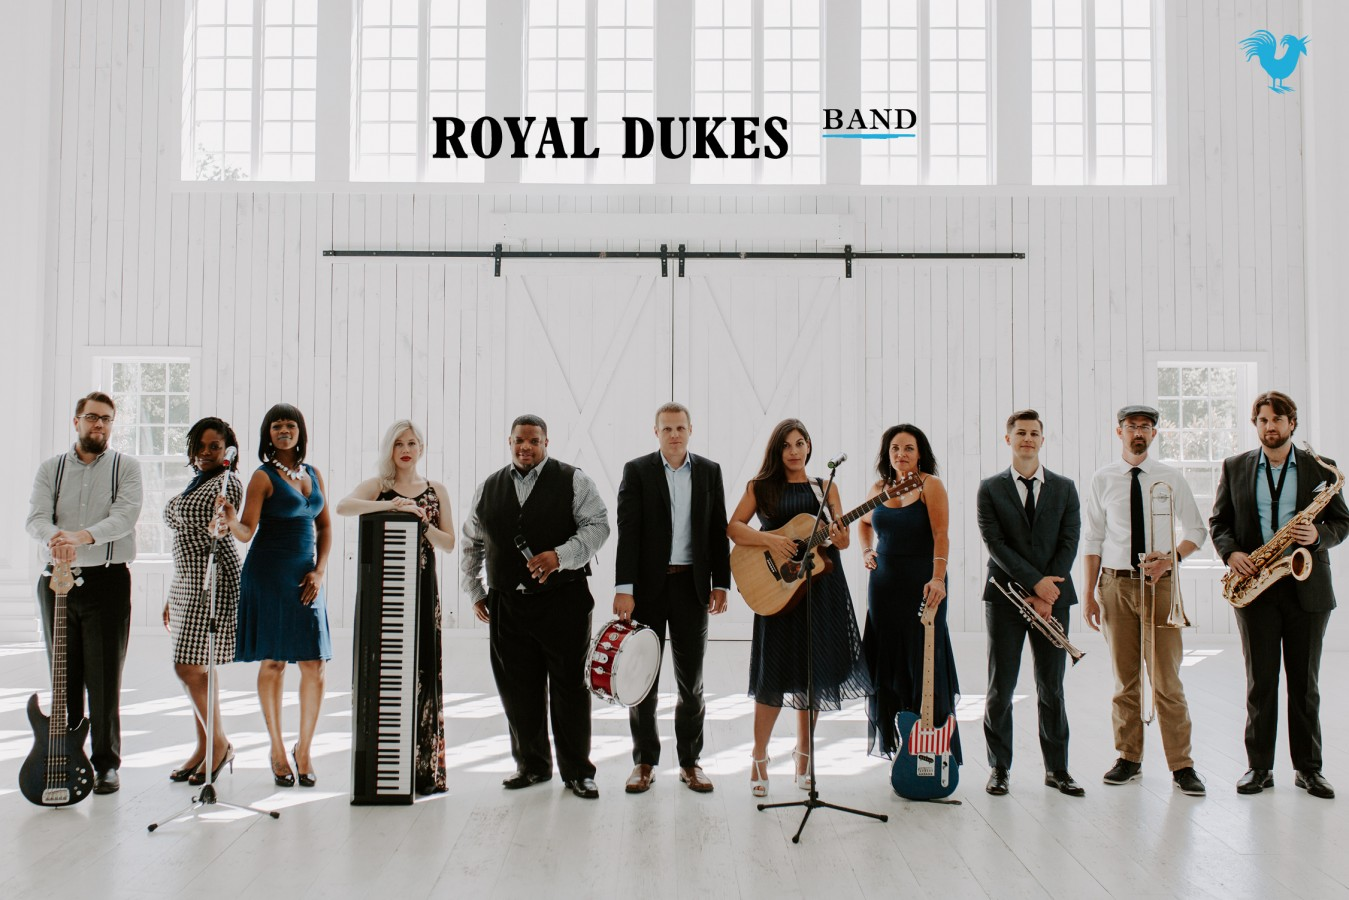 Royal Dukes Band - Music